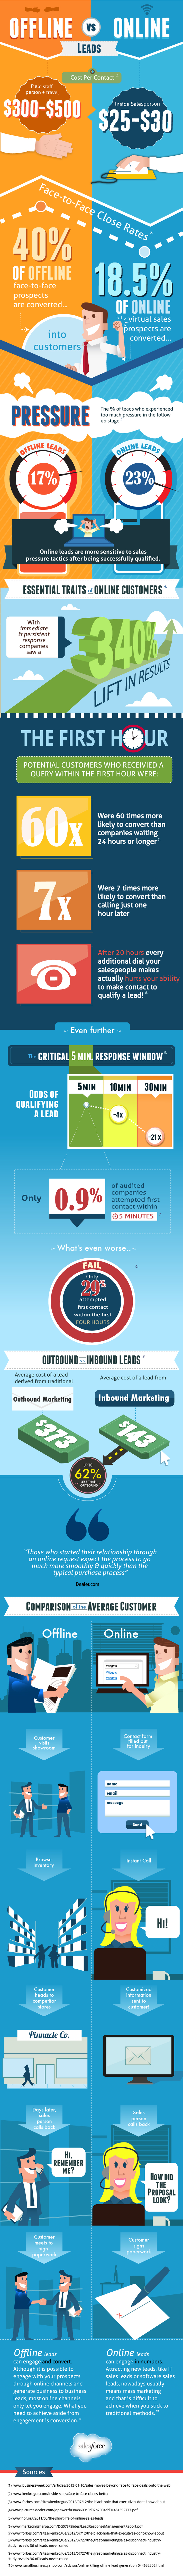 The Difference Between Online, Offline Leads